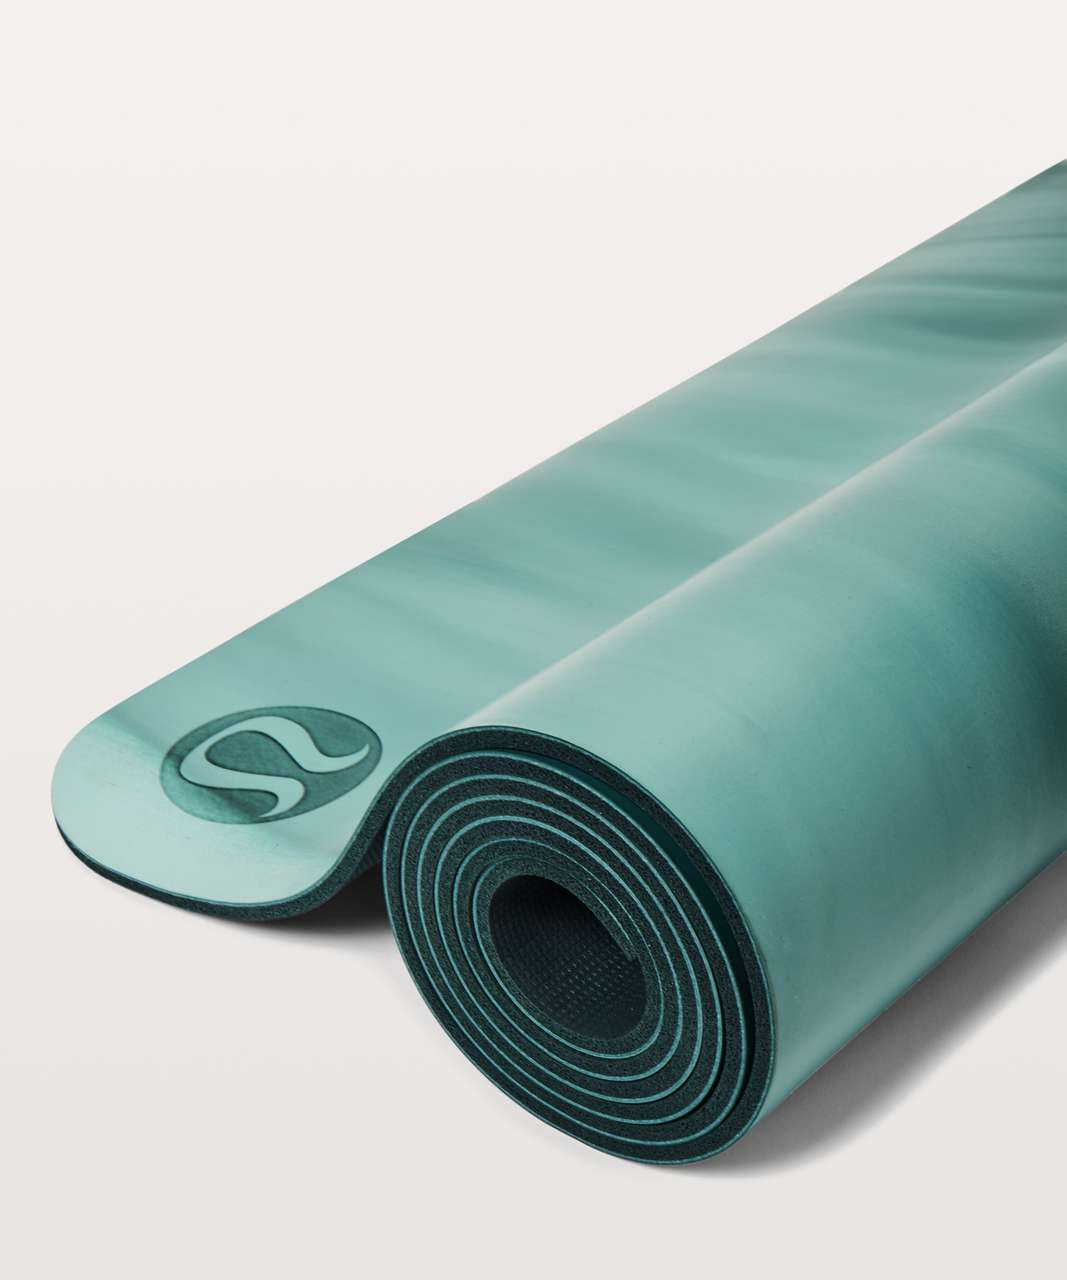 Lululemon The Reversible Mat 5mm - Sea Green / Tonic Sea / Teal Shadow